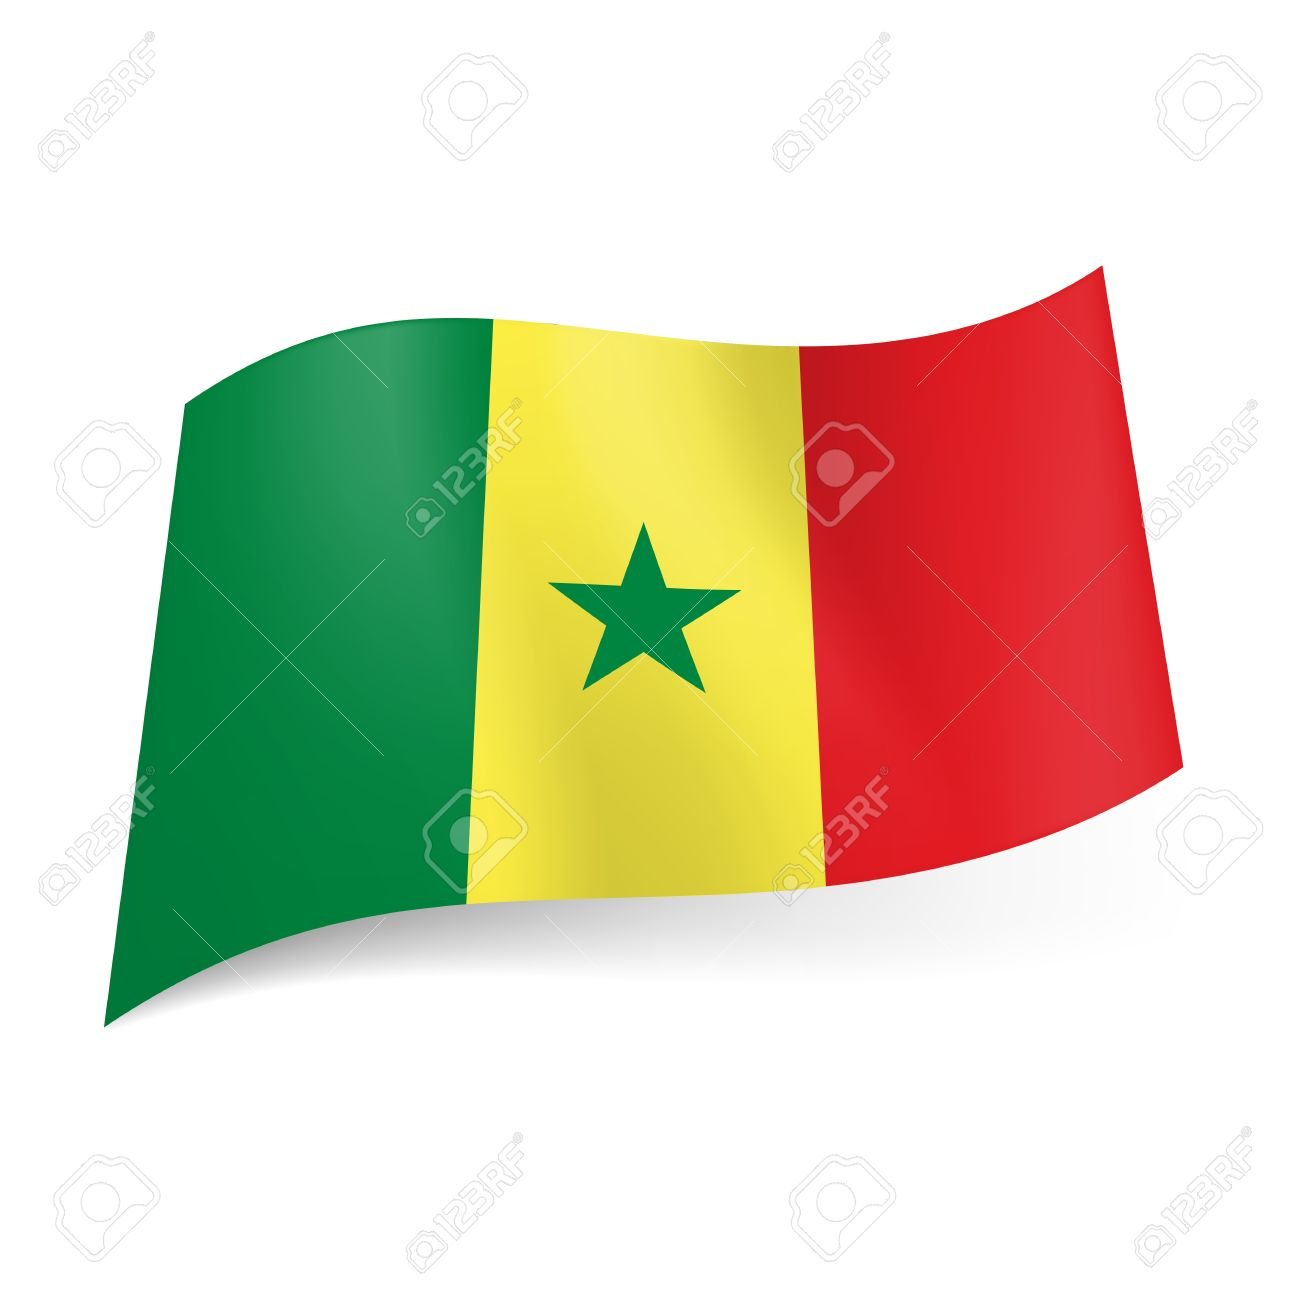 national flag of senegal green, yellow and red vertical stripes